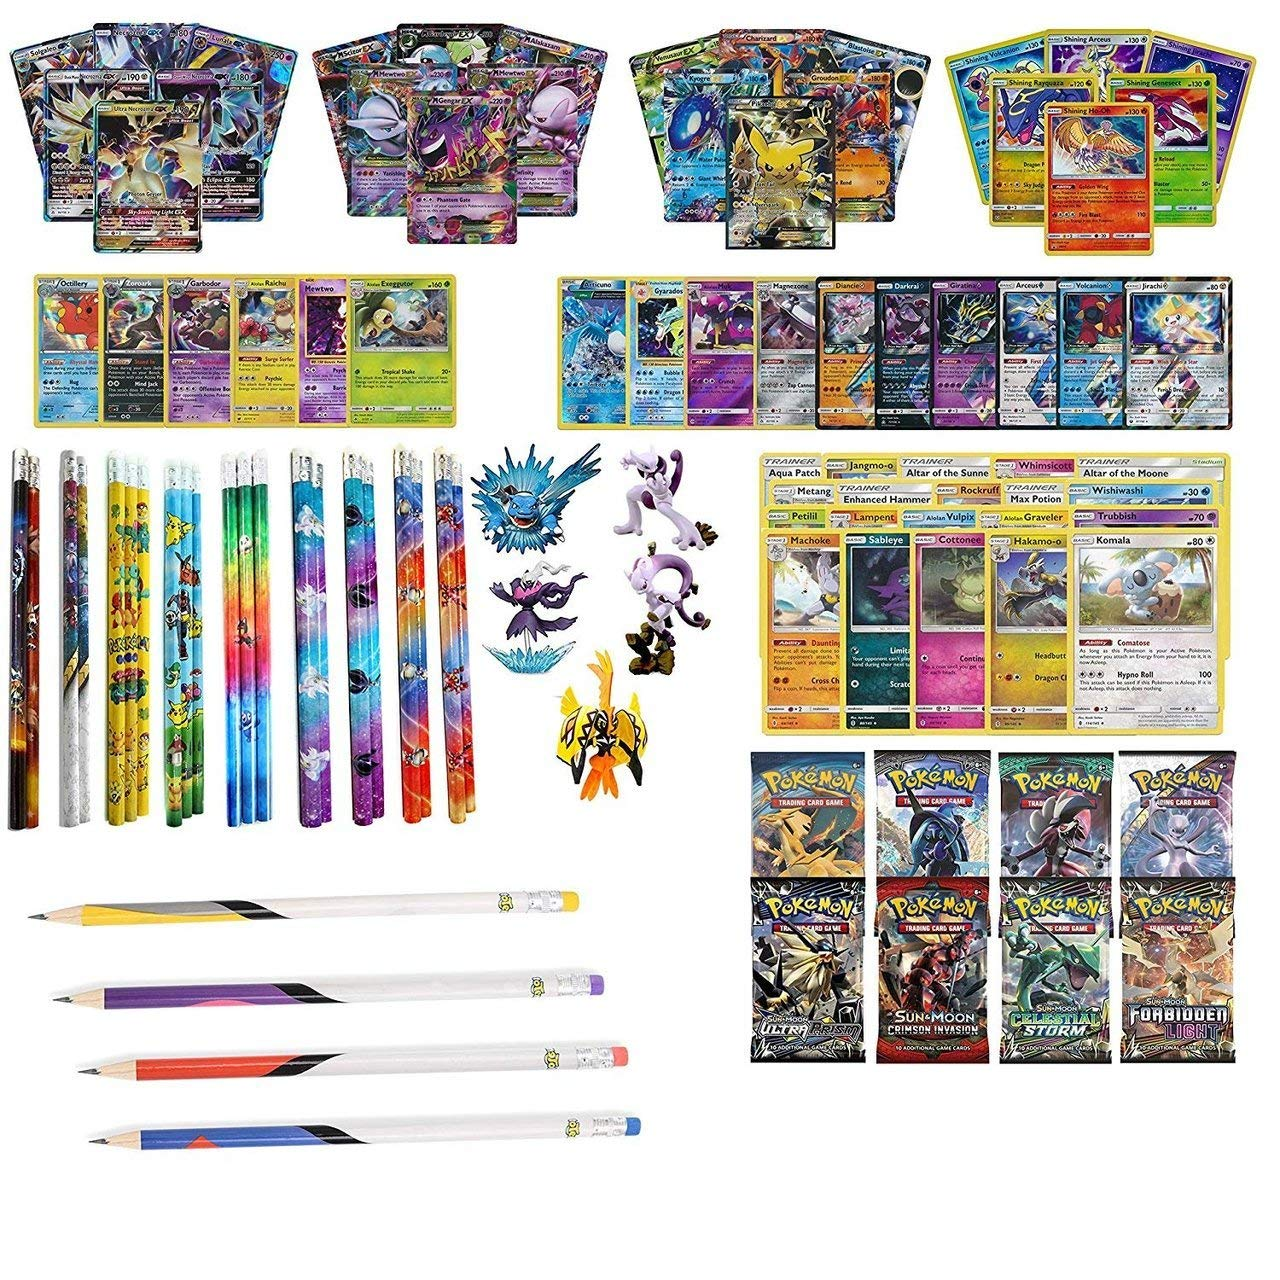 Playoly Pokemon Premium Collection 100 Cards with GX Mega EX Shining Holo 10 Rares 4 Booster Pack - Figure -12 Pokemon Pencils